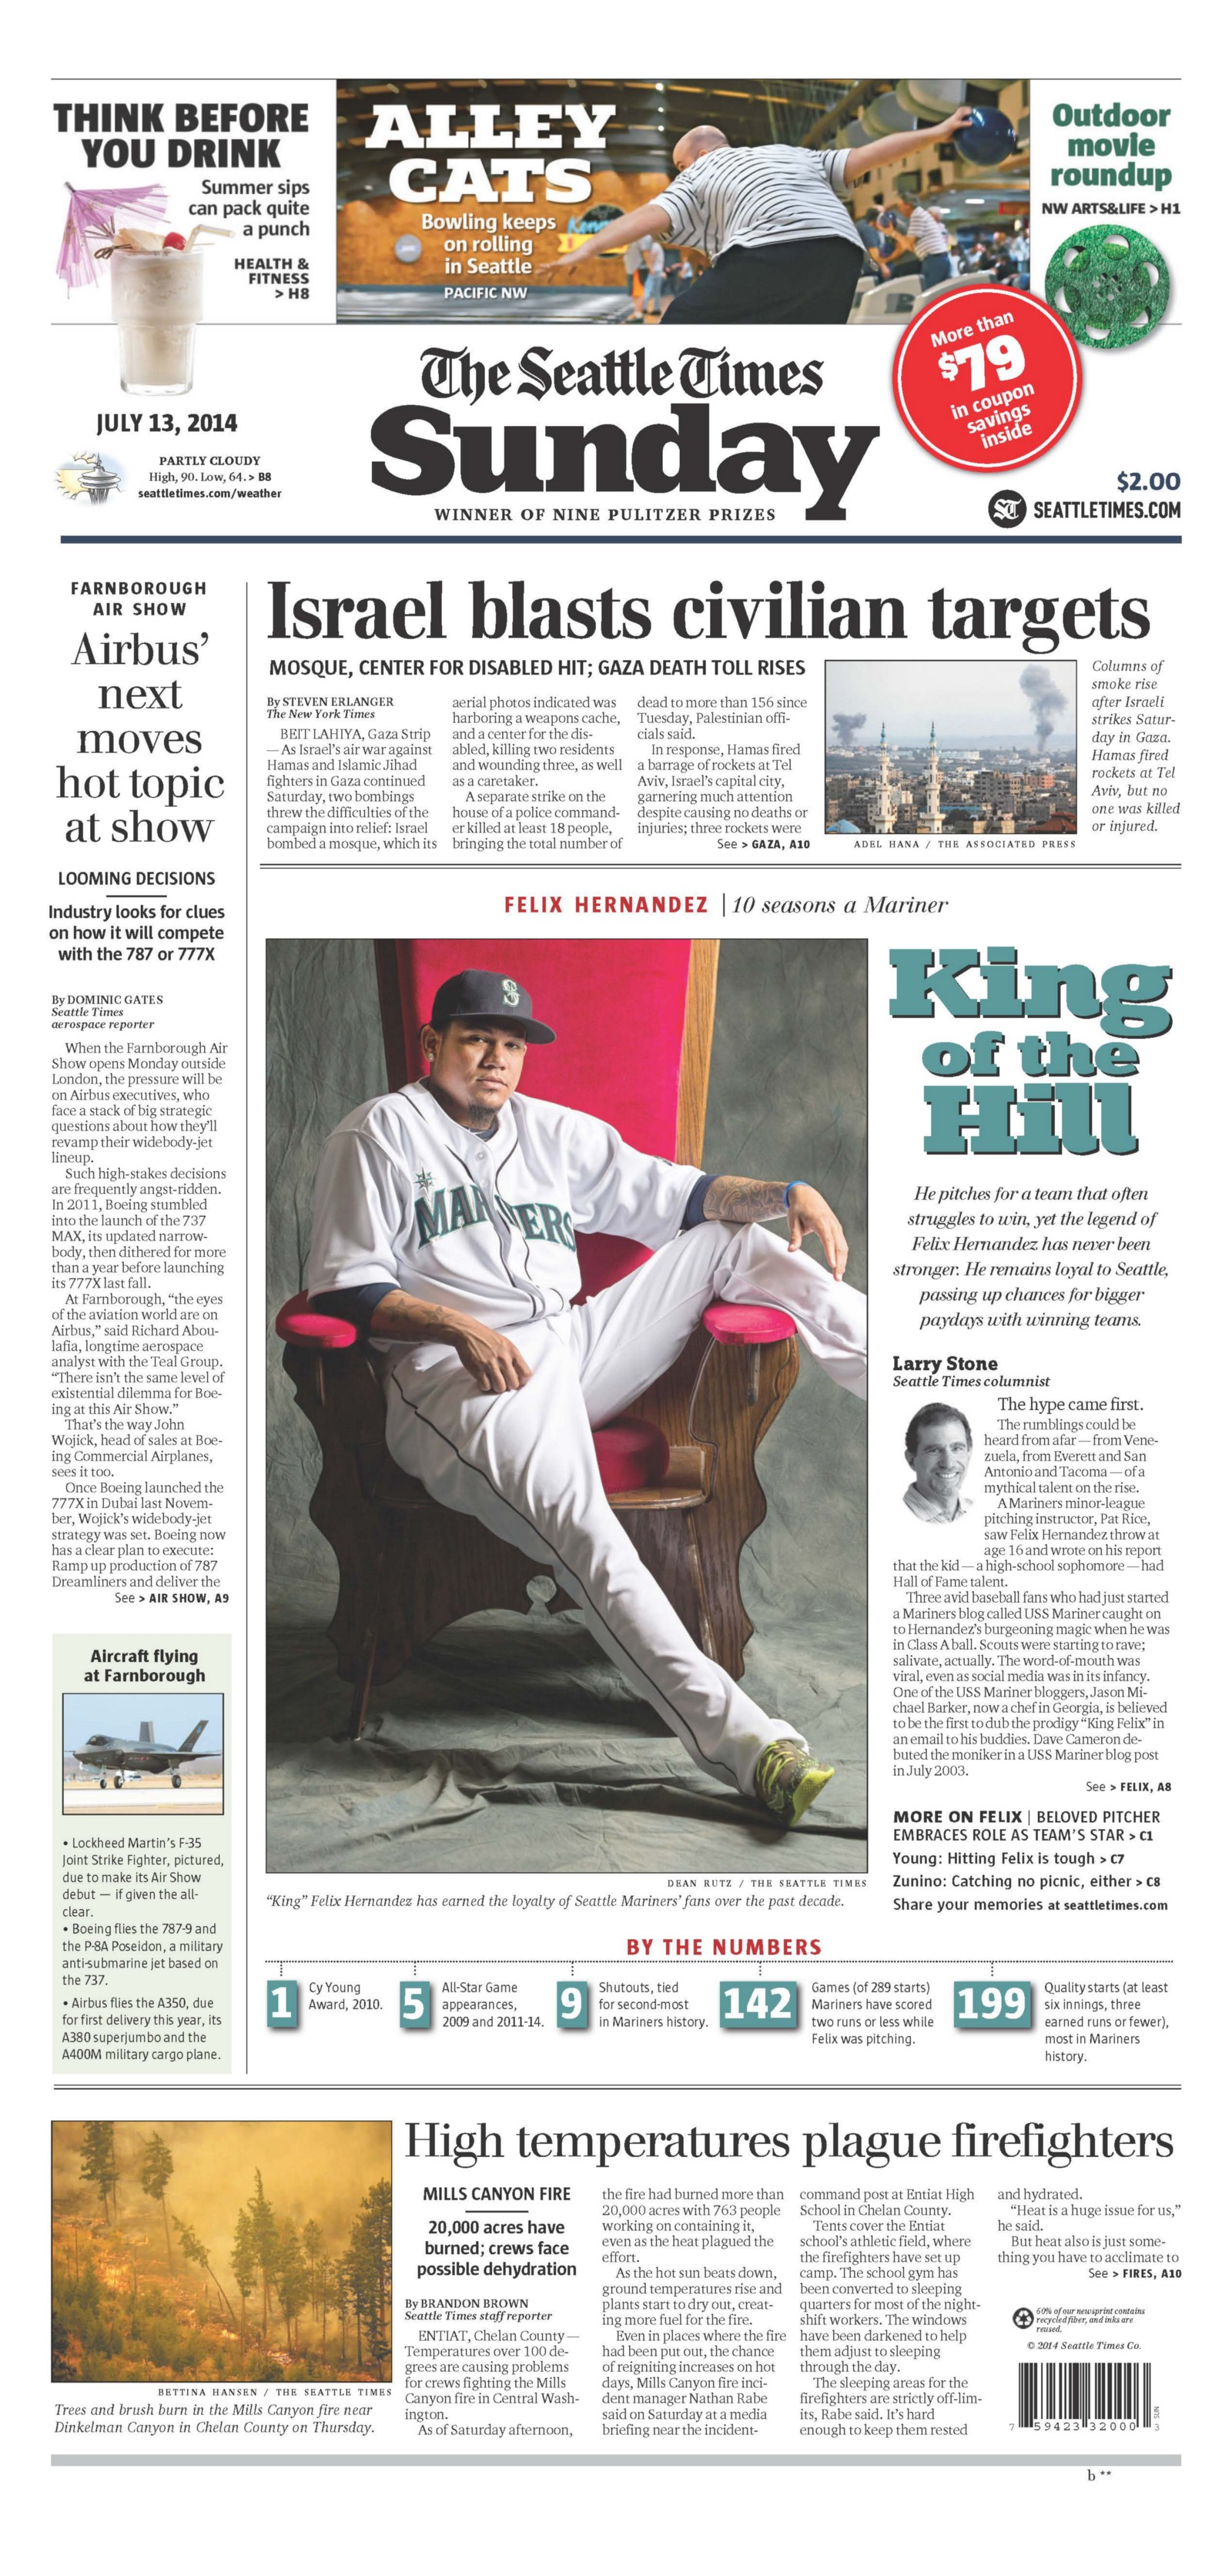 King of the Hill — Sunday Seattle Times Features Felix Hernandez